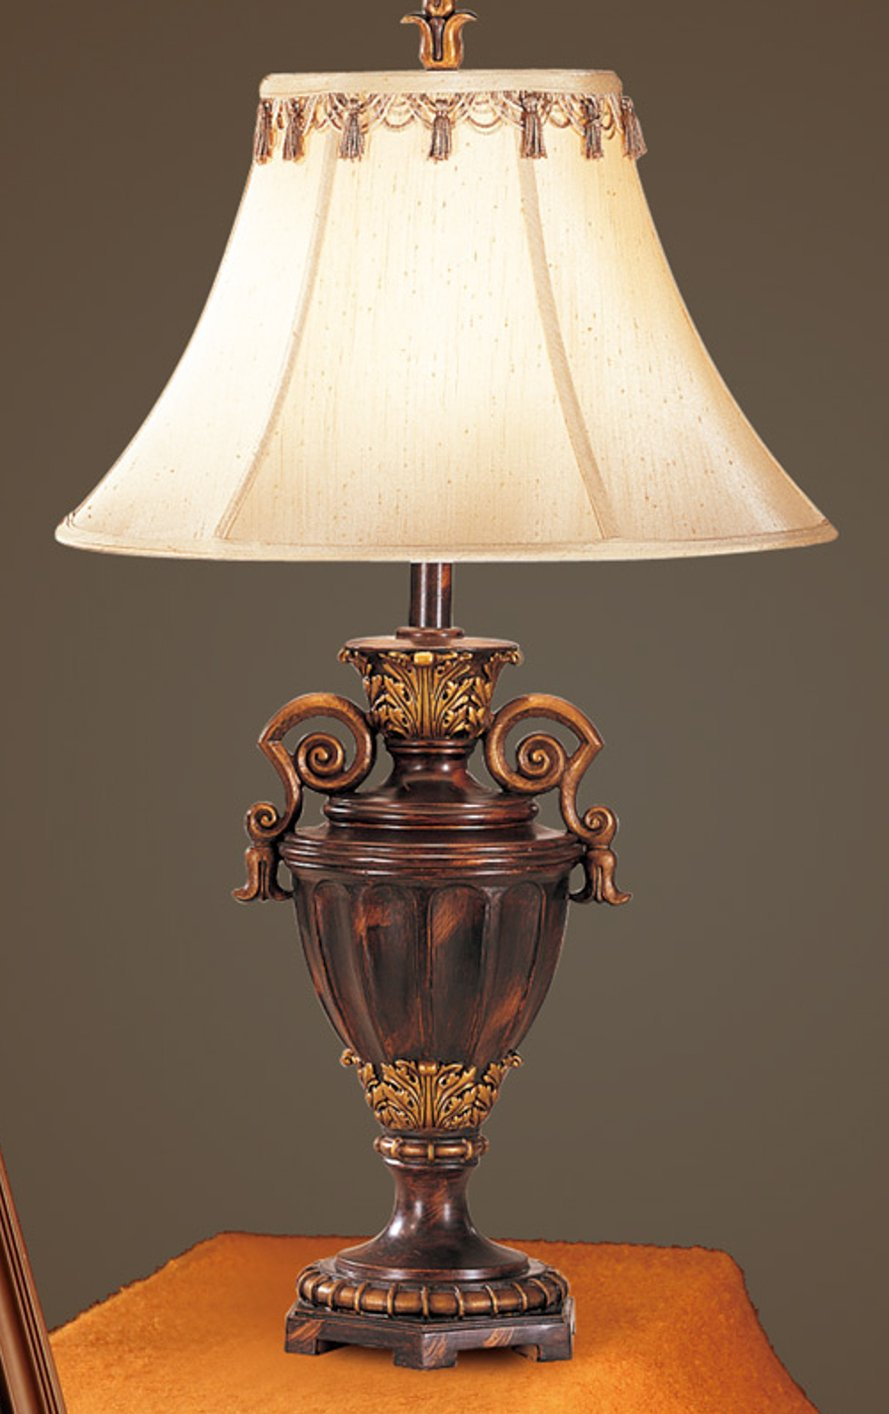 Brown Glass Table Lamp Steal A Sofa Furniture Outlet Los